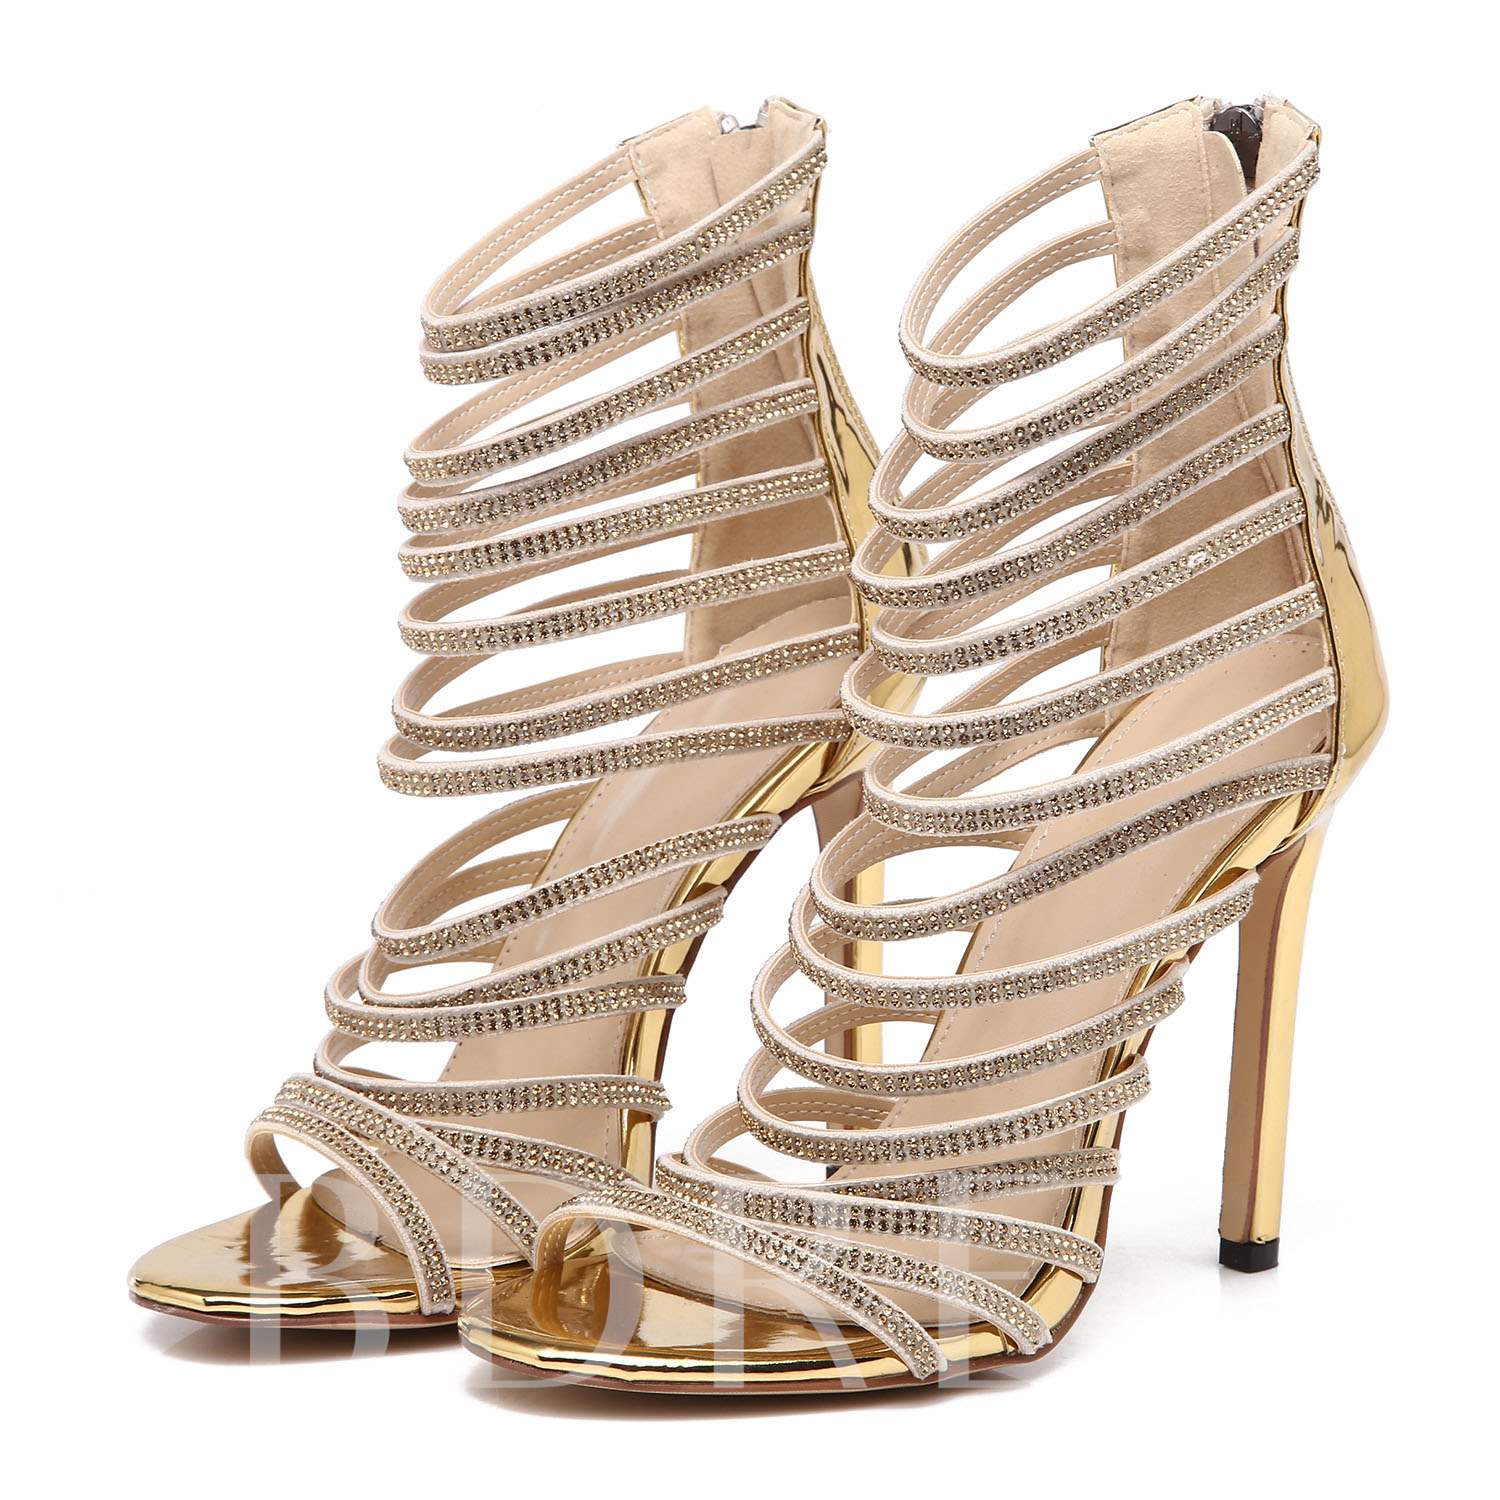 Rhinestone Lace Buckle Gold Heels Sandals for Women, Spring,Summer, 13176674